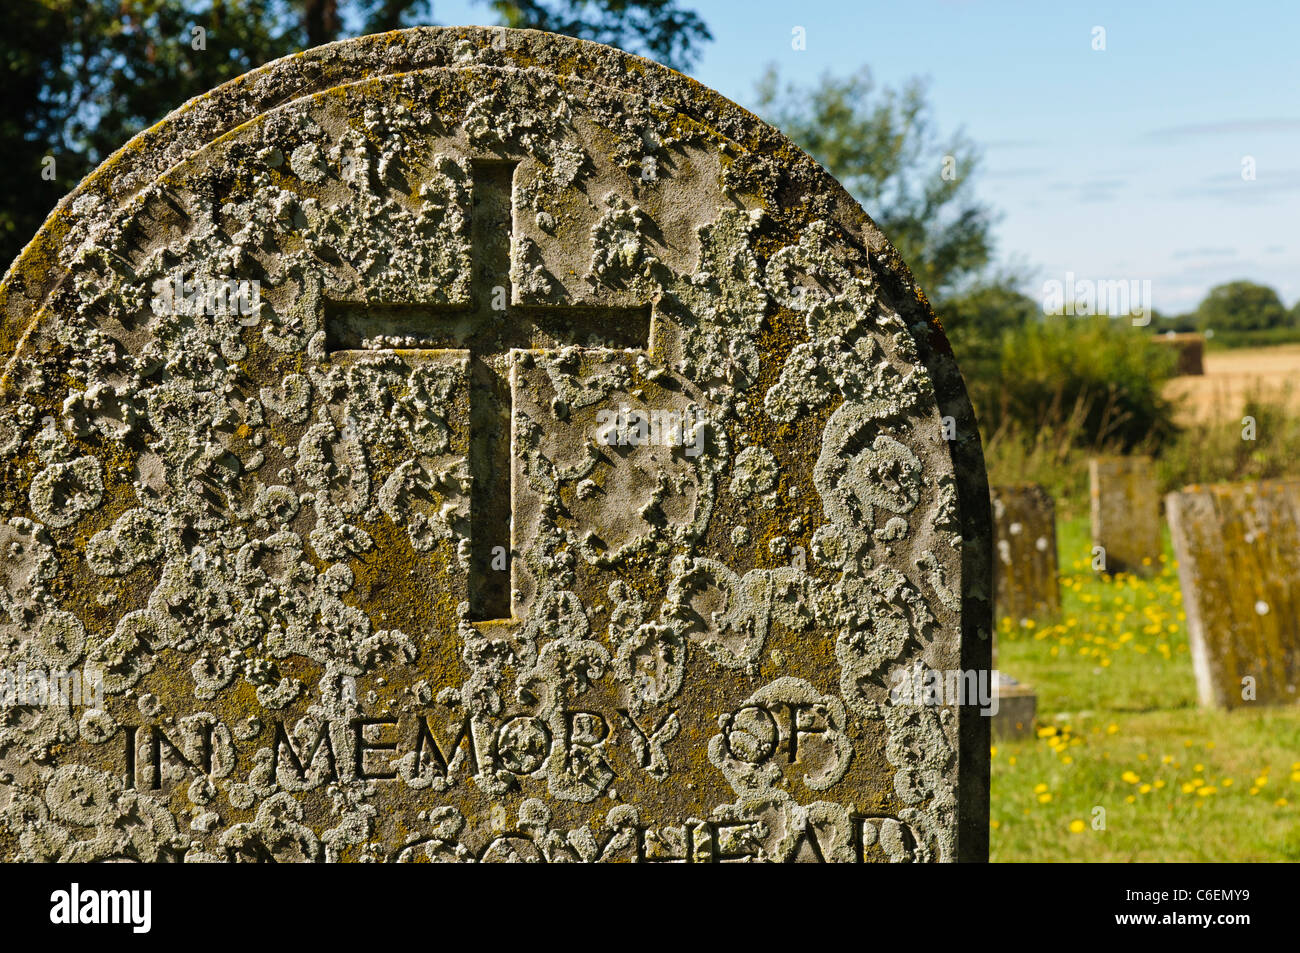 Lichen on a very old gravestone - Stock Image